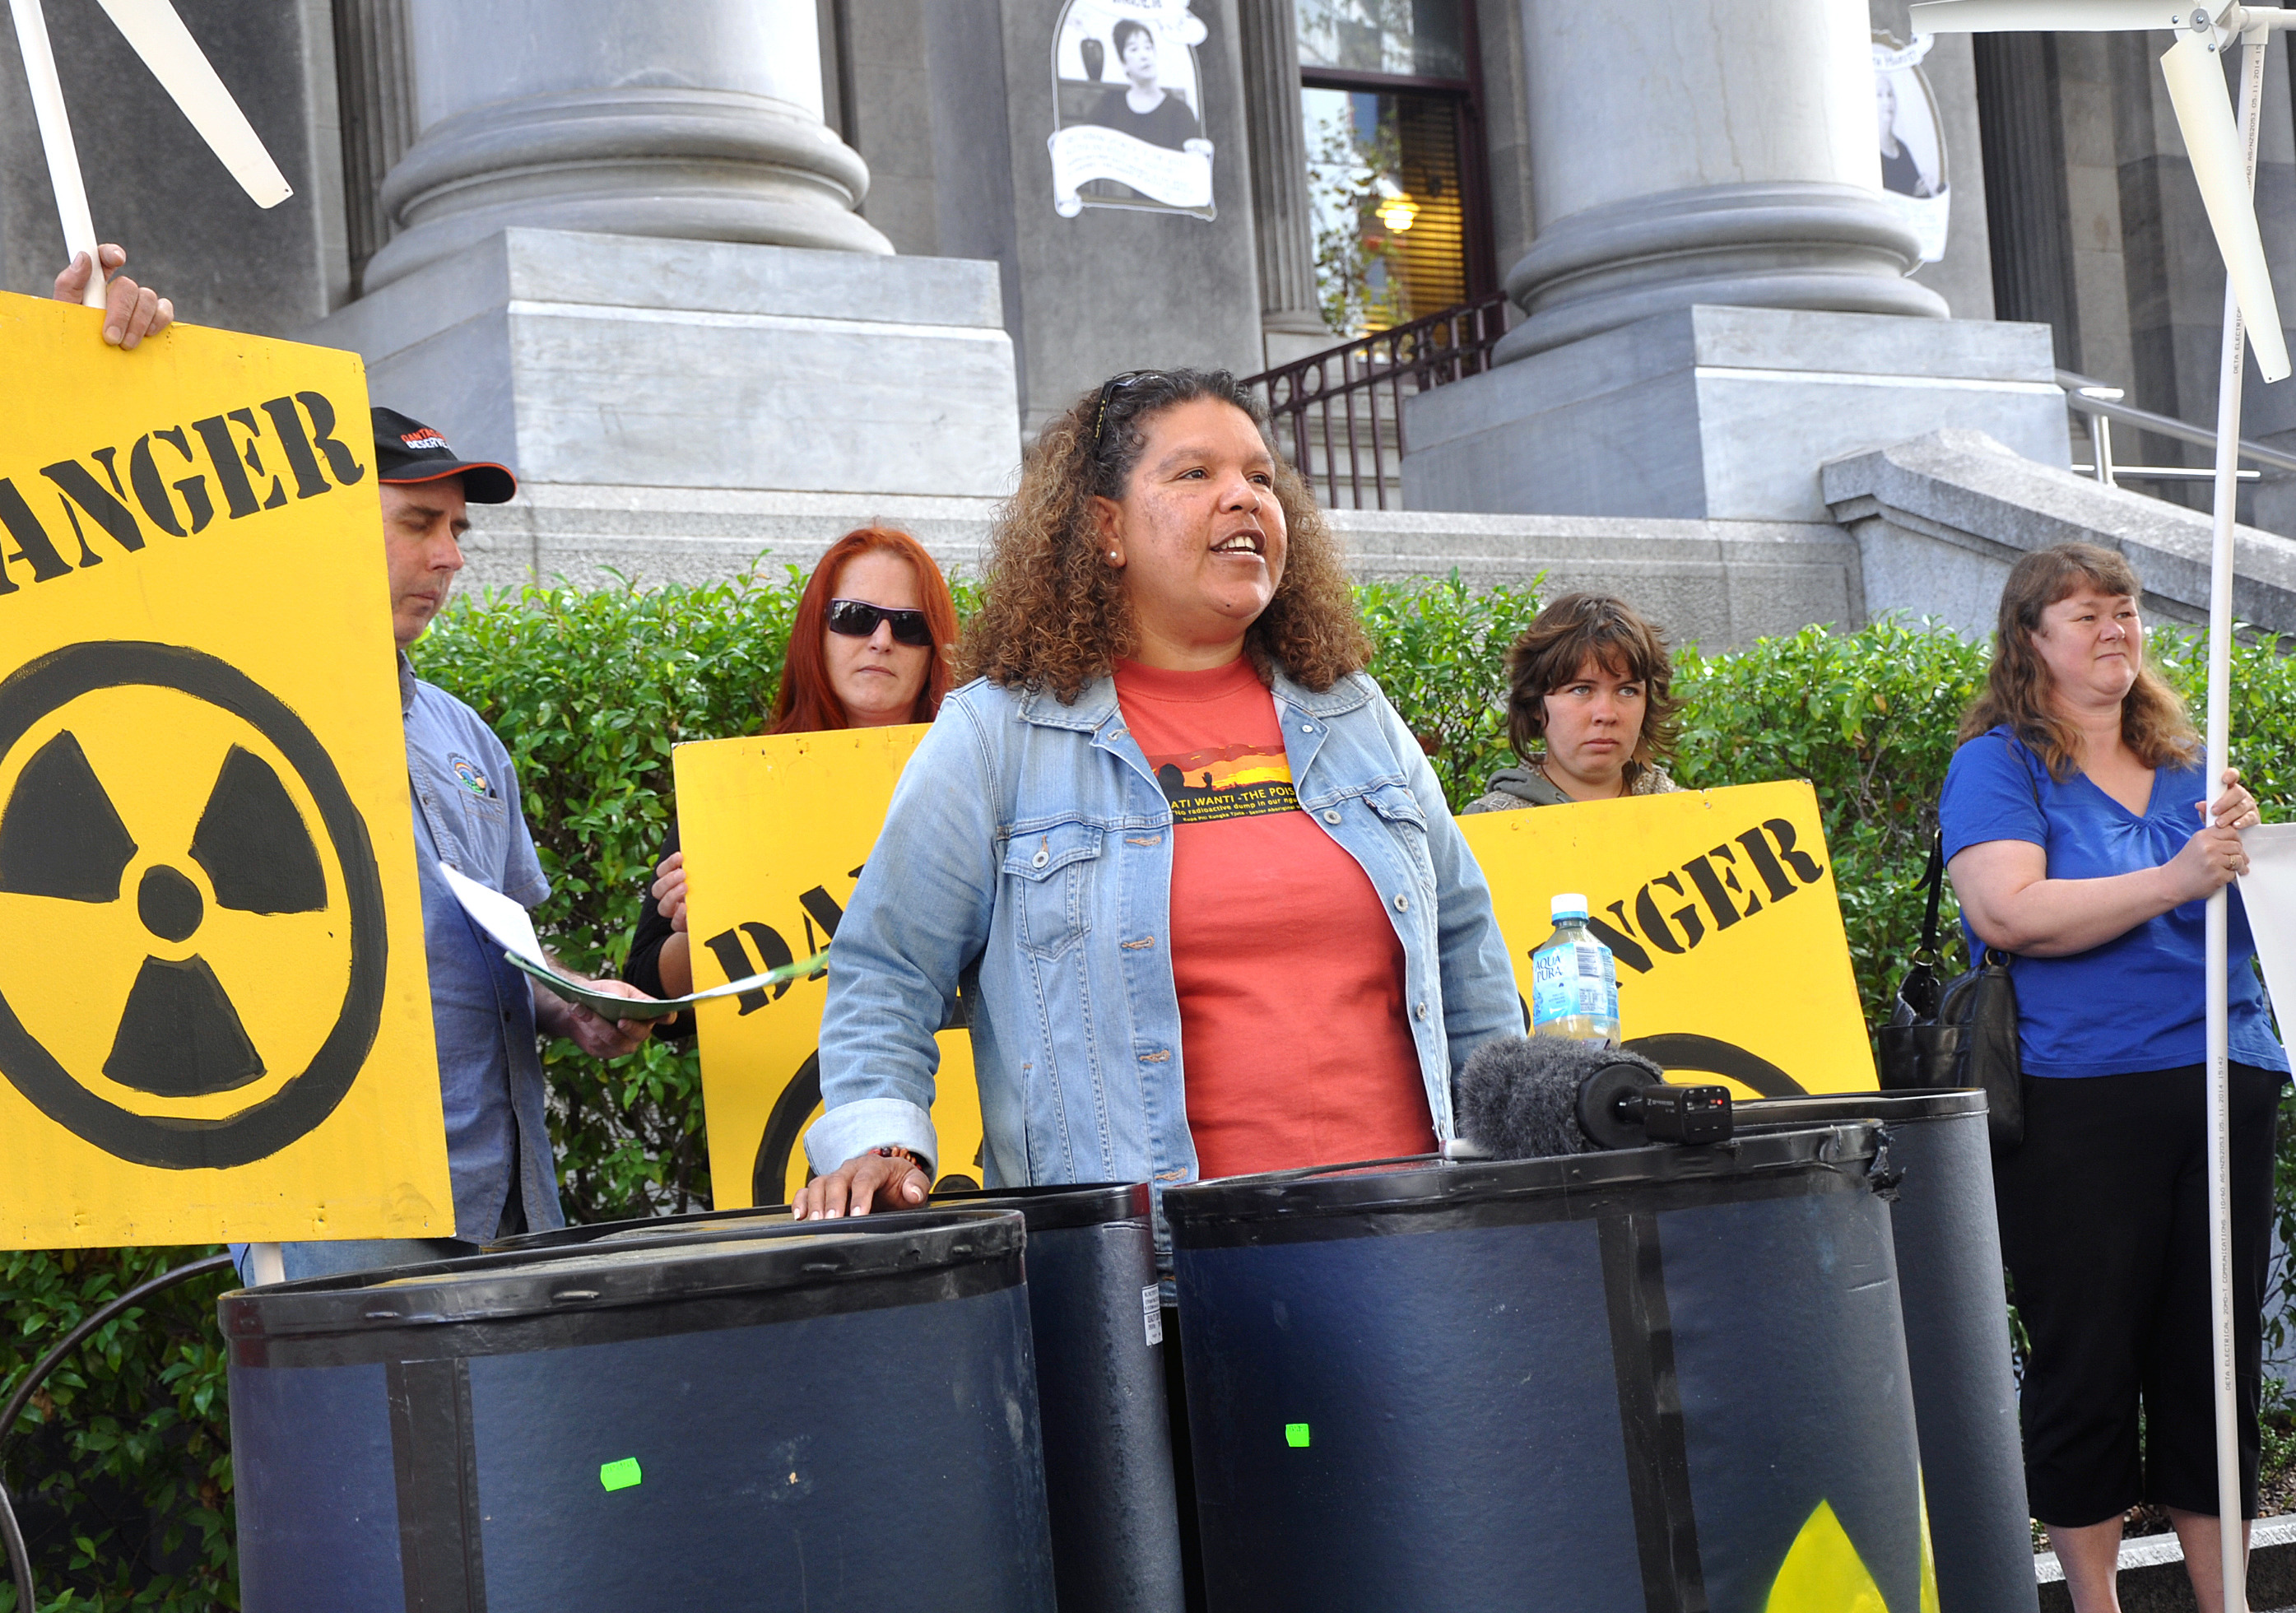 Karina Lester addresses an anti-nuclear protest outside Parliament House in Adelaide. Photo: AAP/Michael Ramsey